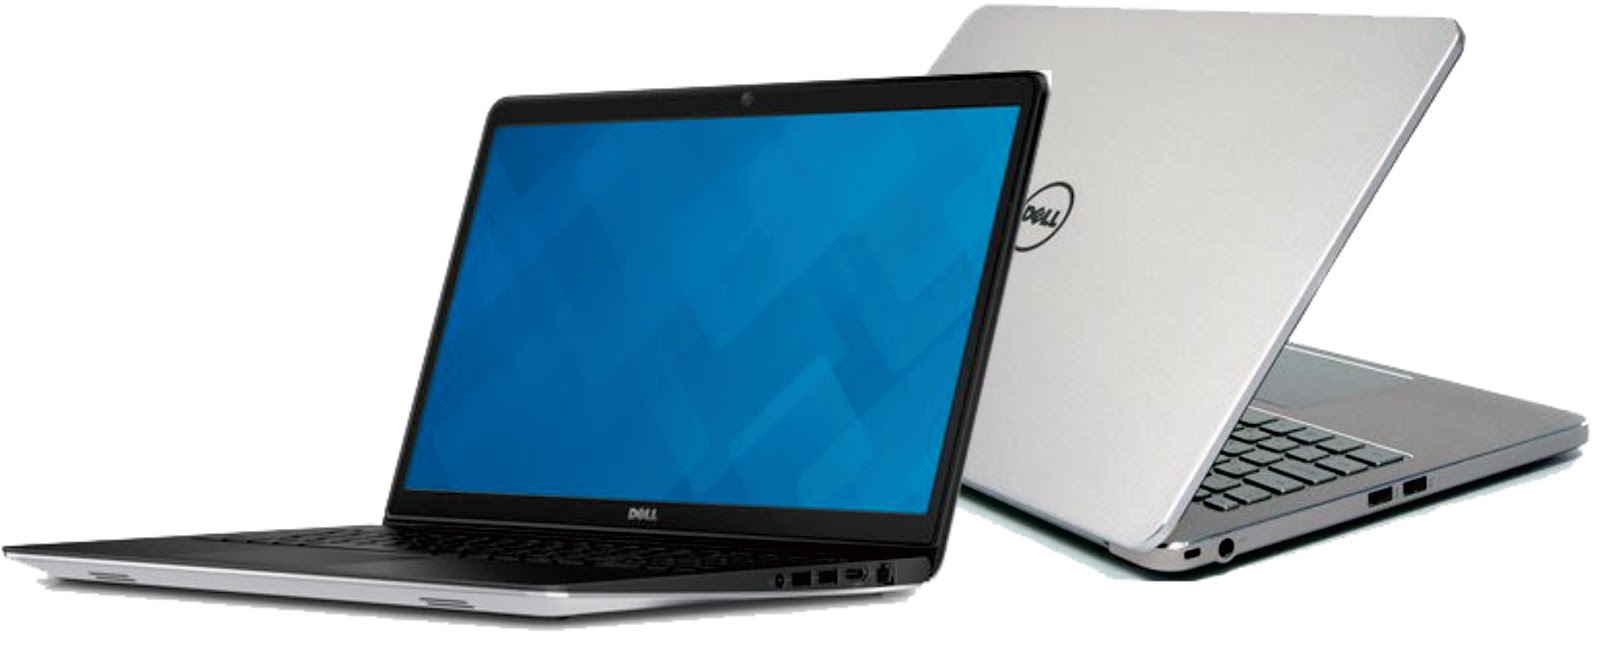 dell inspiron 15 drivers for windows 8.1 32 bit